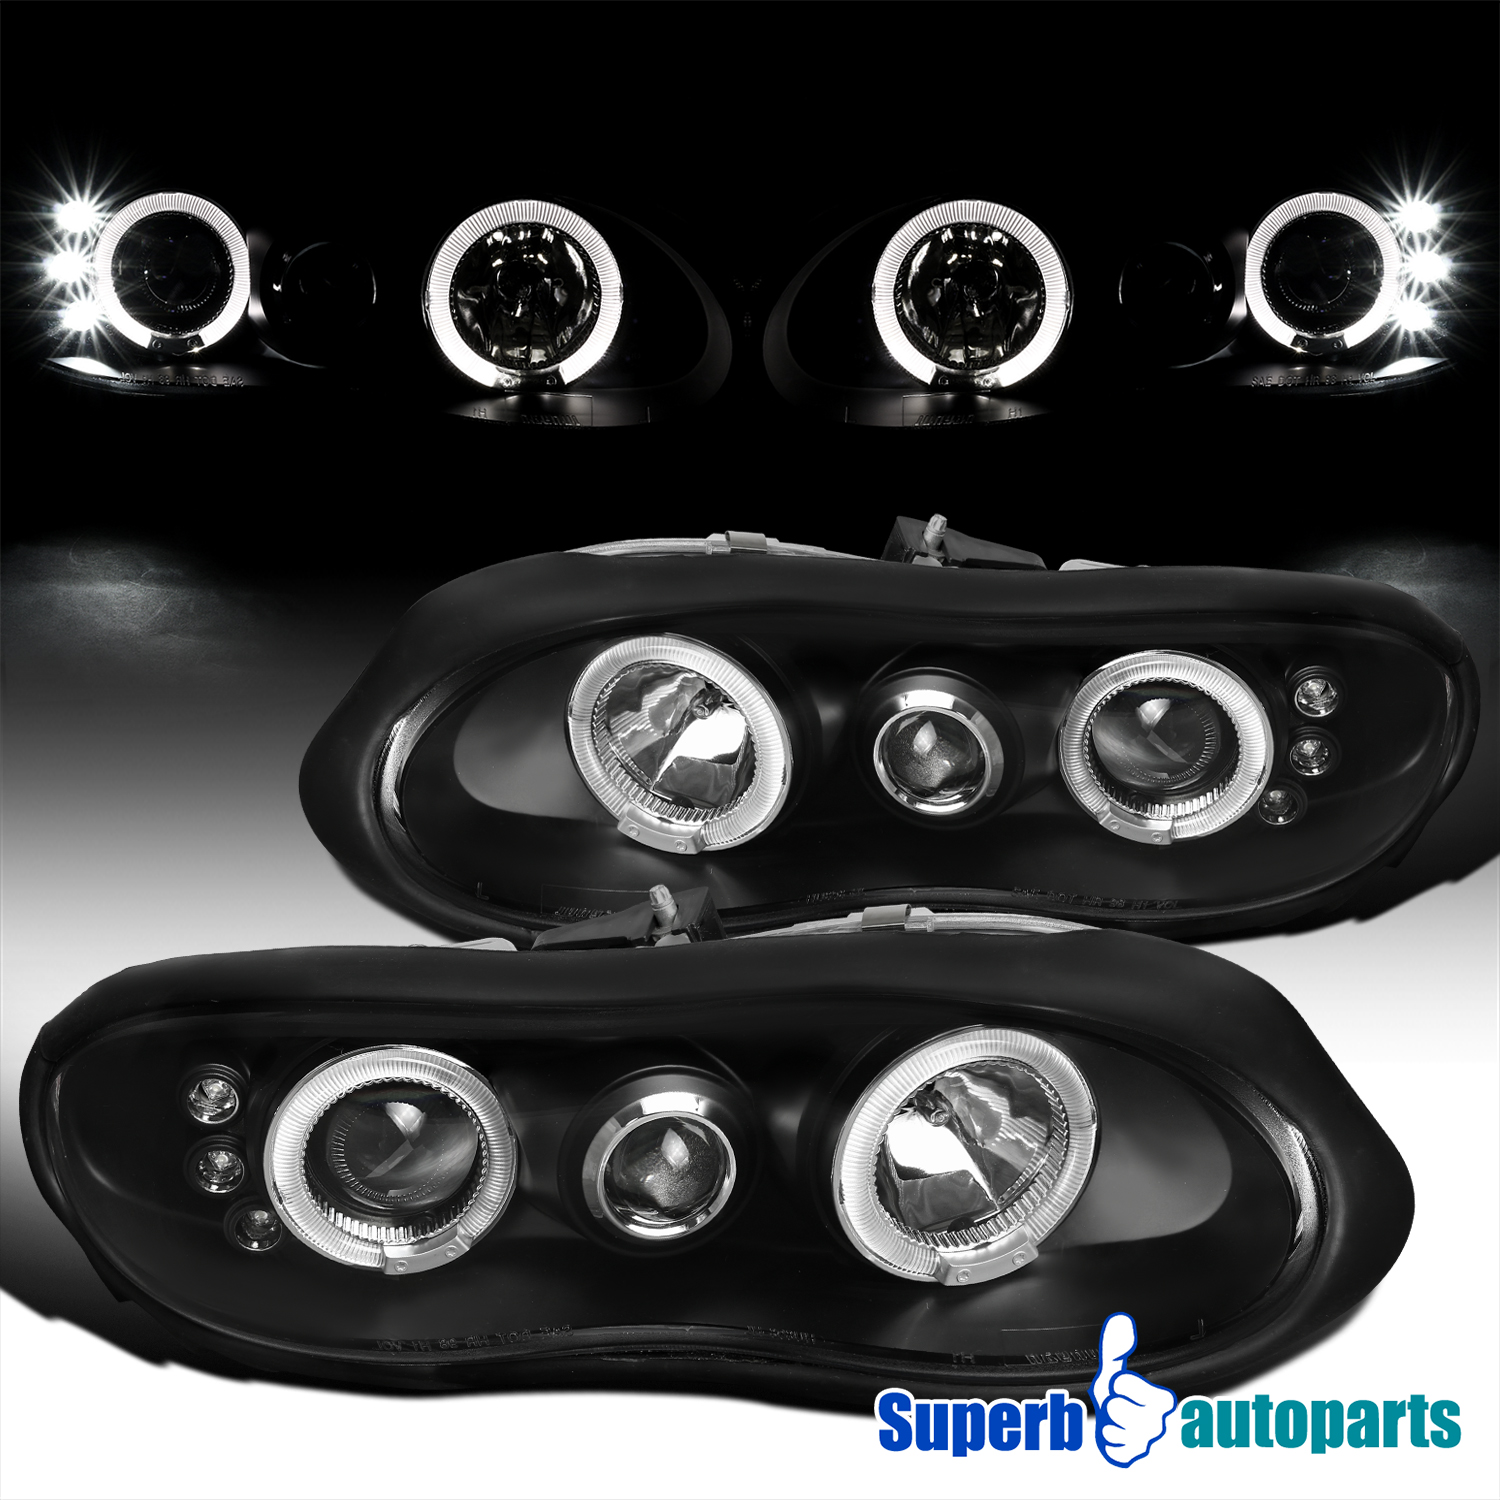 1998 2002 chevy camaro halo led projector headlights black for 2000 camaro window motor replacement